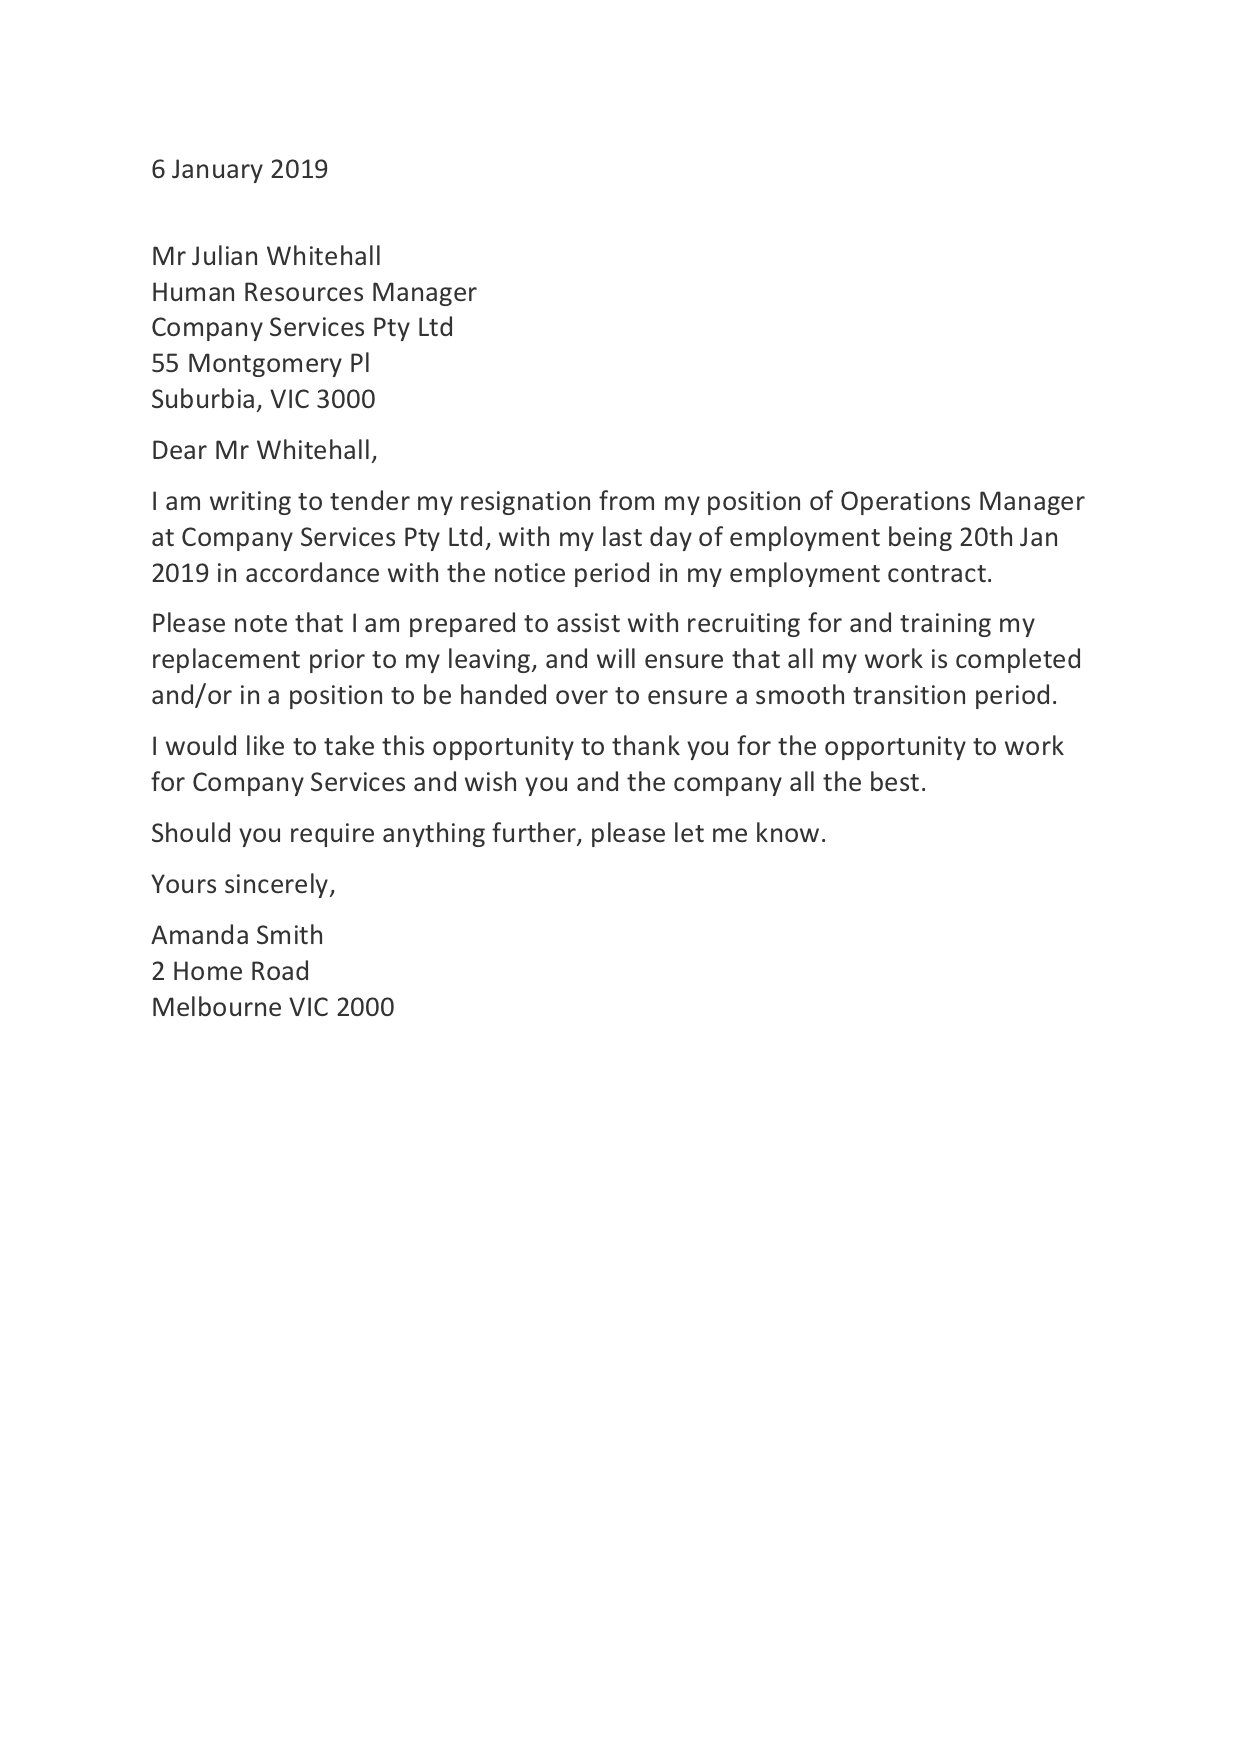 Appreciative Resignation Letter Template from www.training.com.au